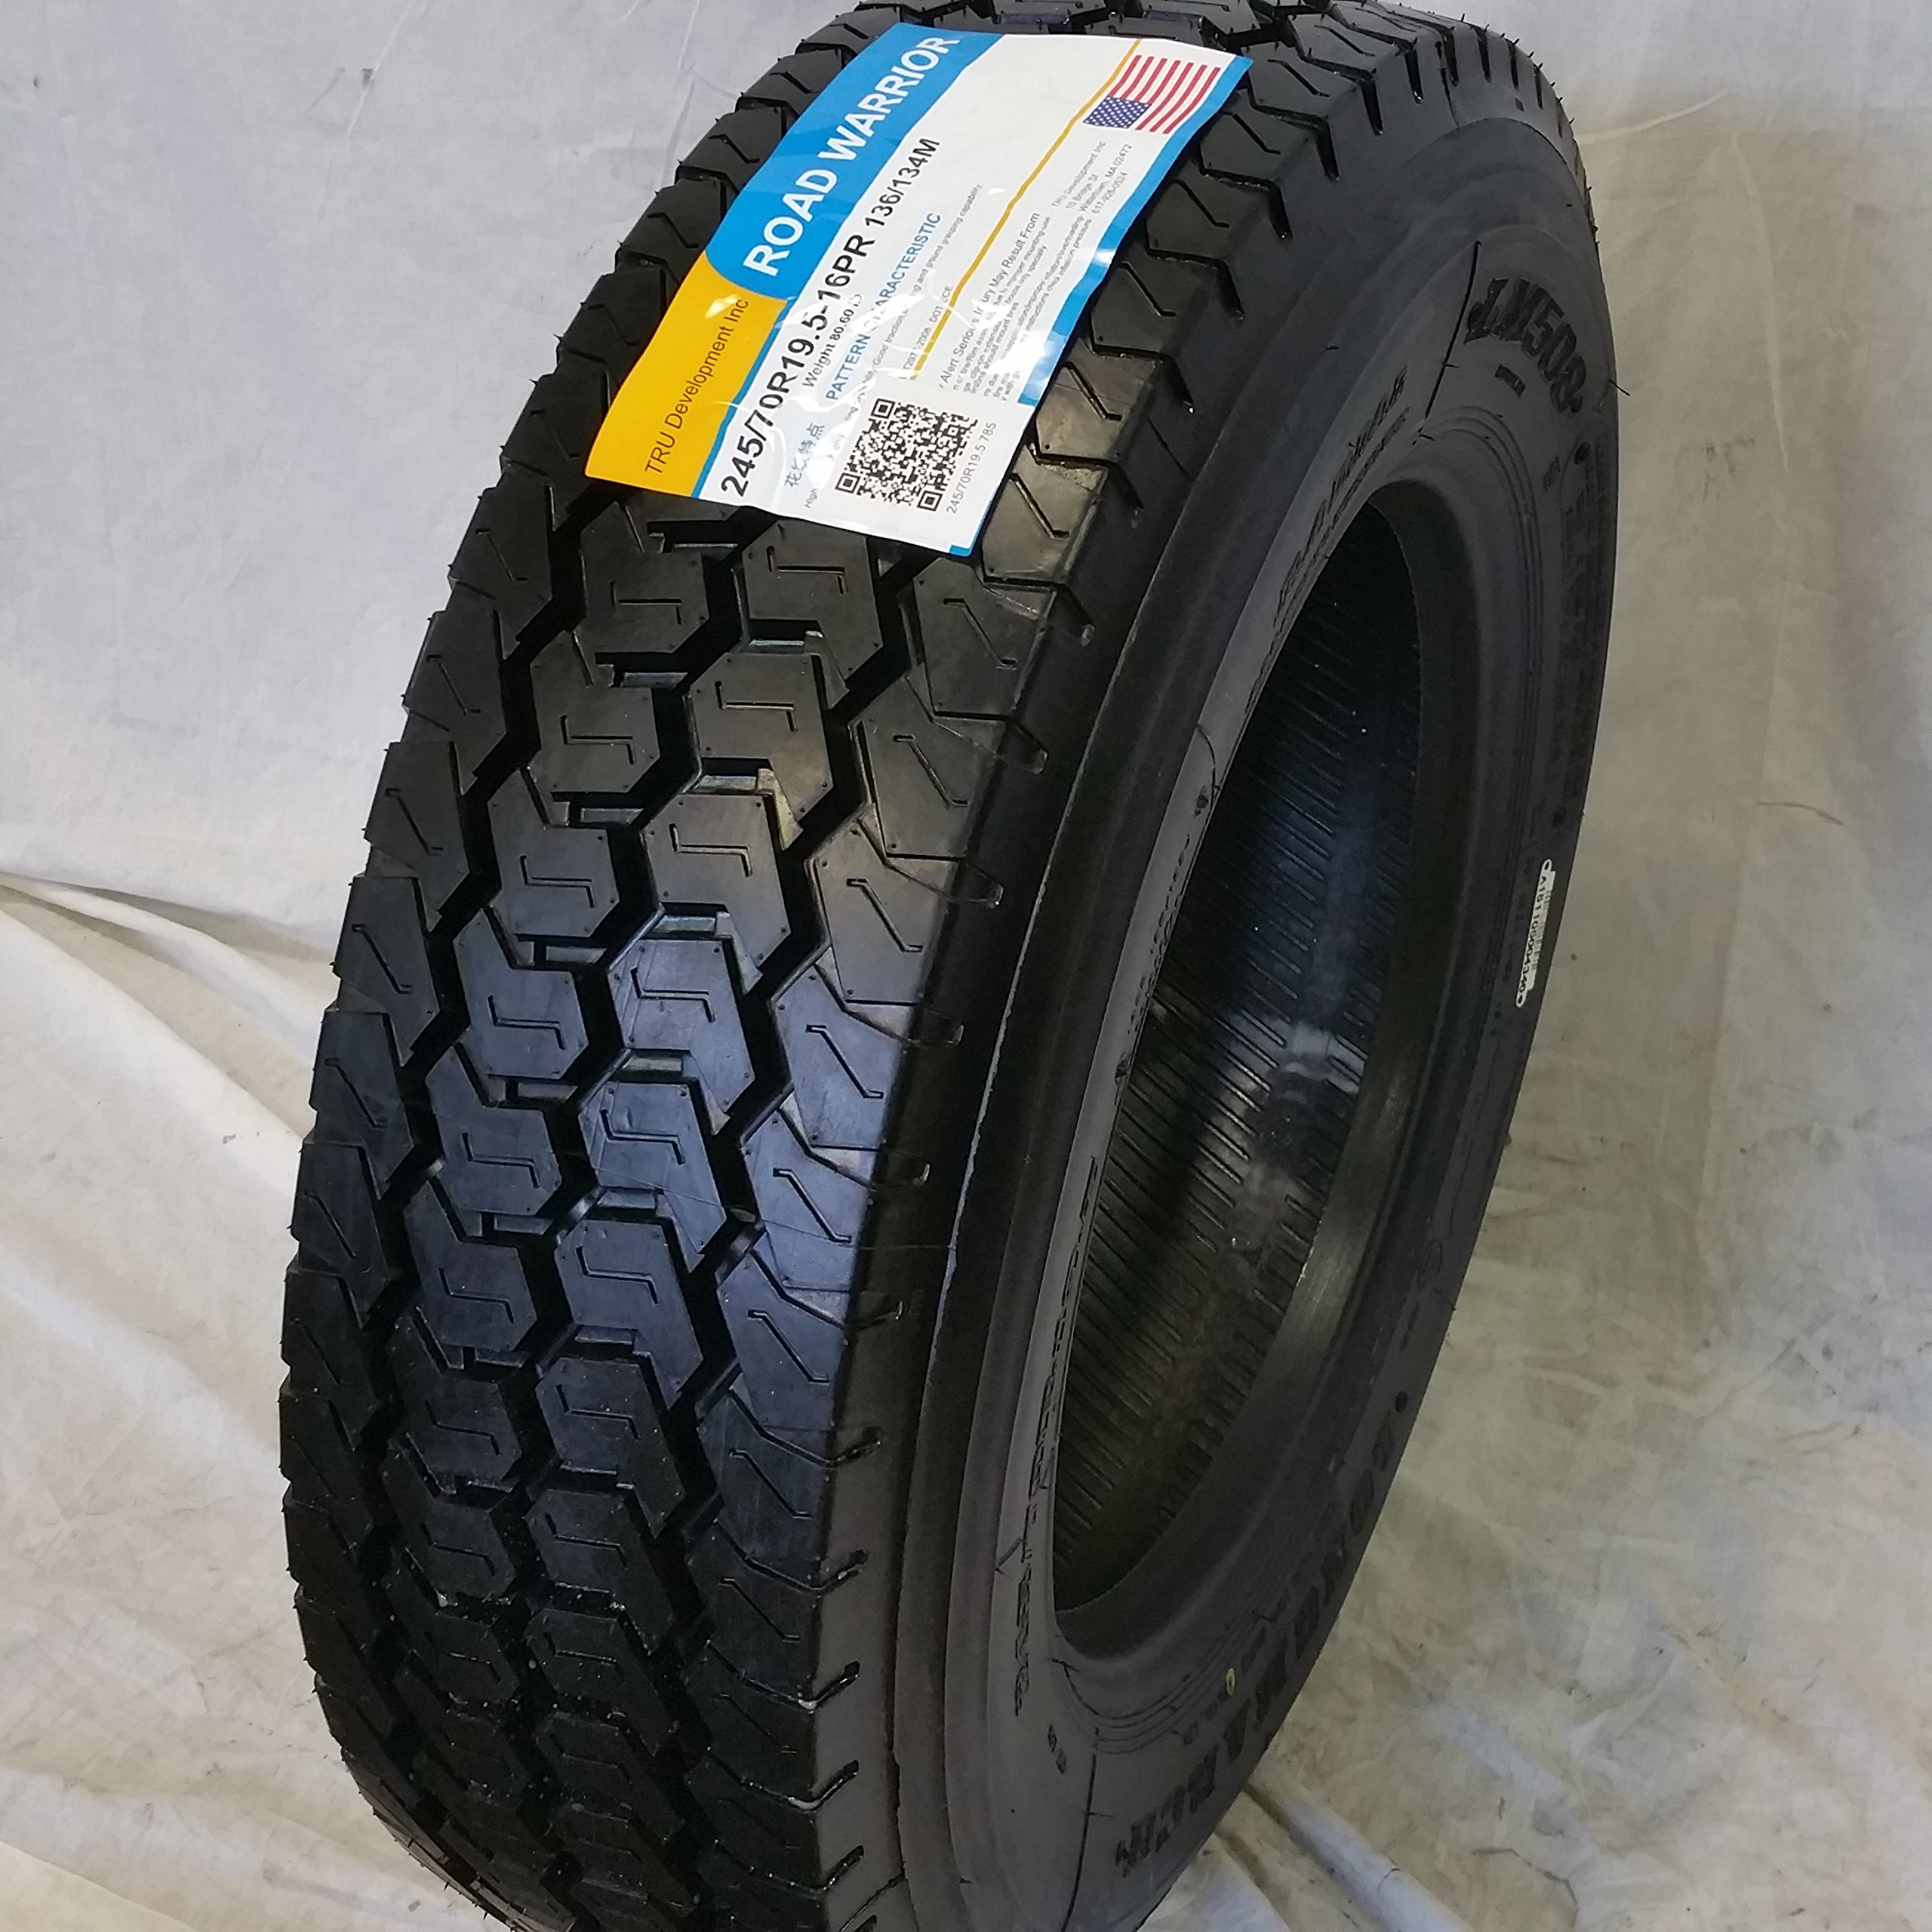 (4-TIRES) 245/70R19.5 H/16 NEW ROAD WARRIOR LONG MARCH LM-508 DRIVE ALL POSITION TIRES 16 PLY 24570195 by ROAD WARRIOR (Image #3)